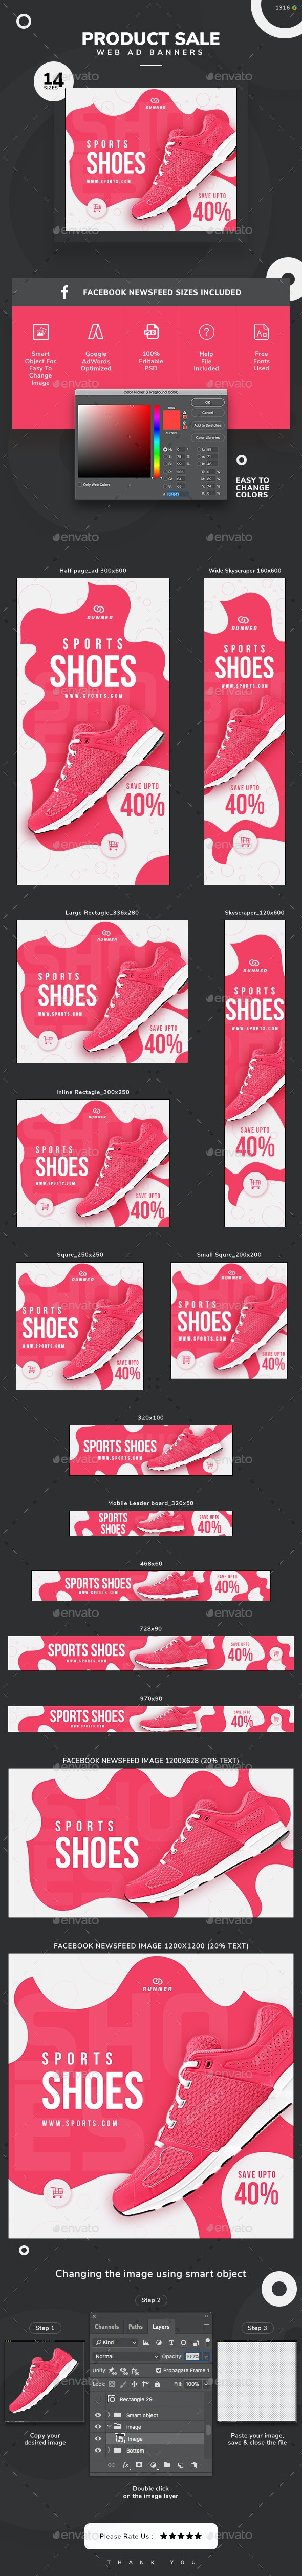 Product Sale Web Banner Set - Banners & Ads Web Elements